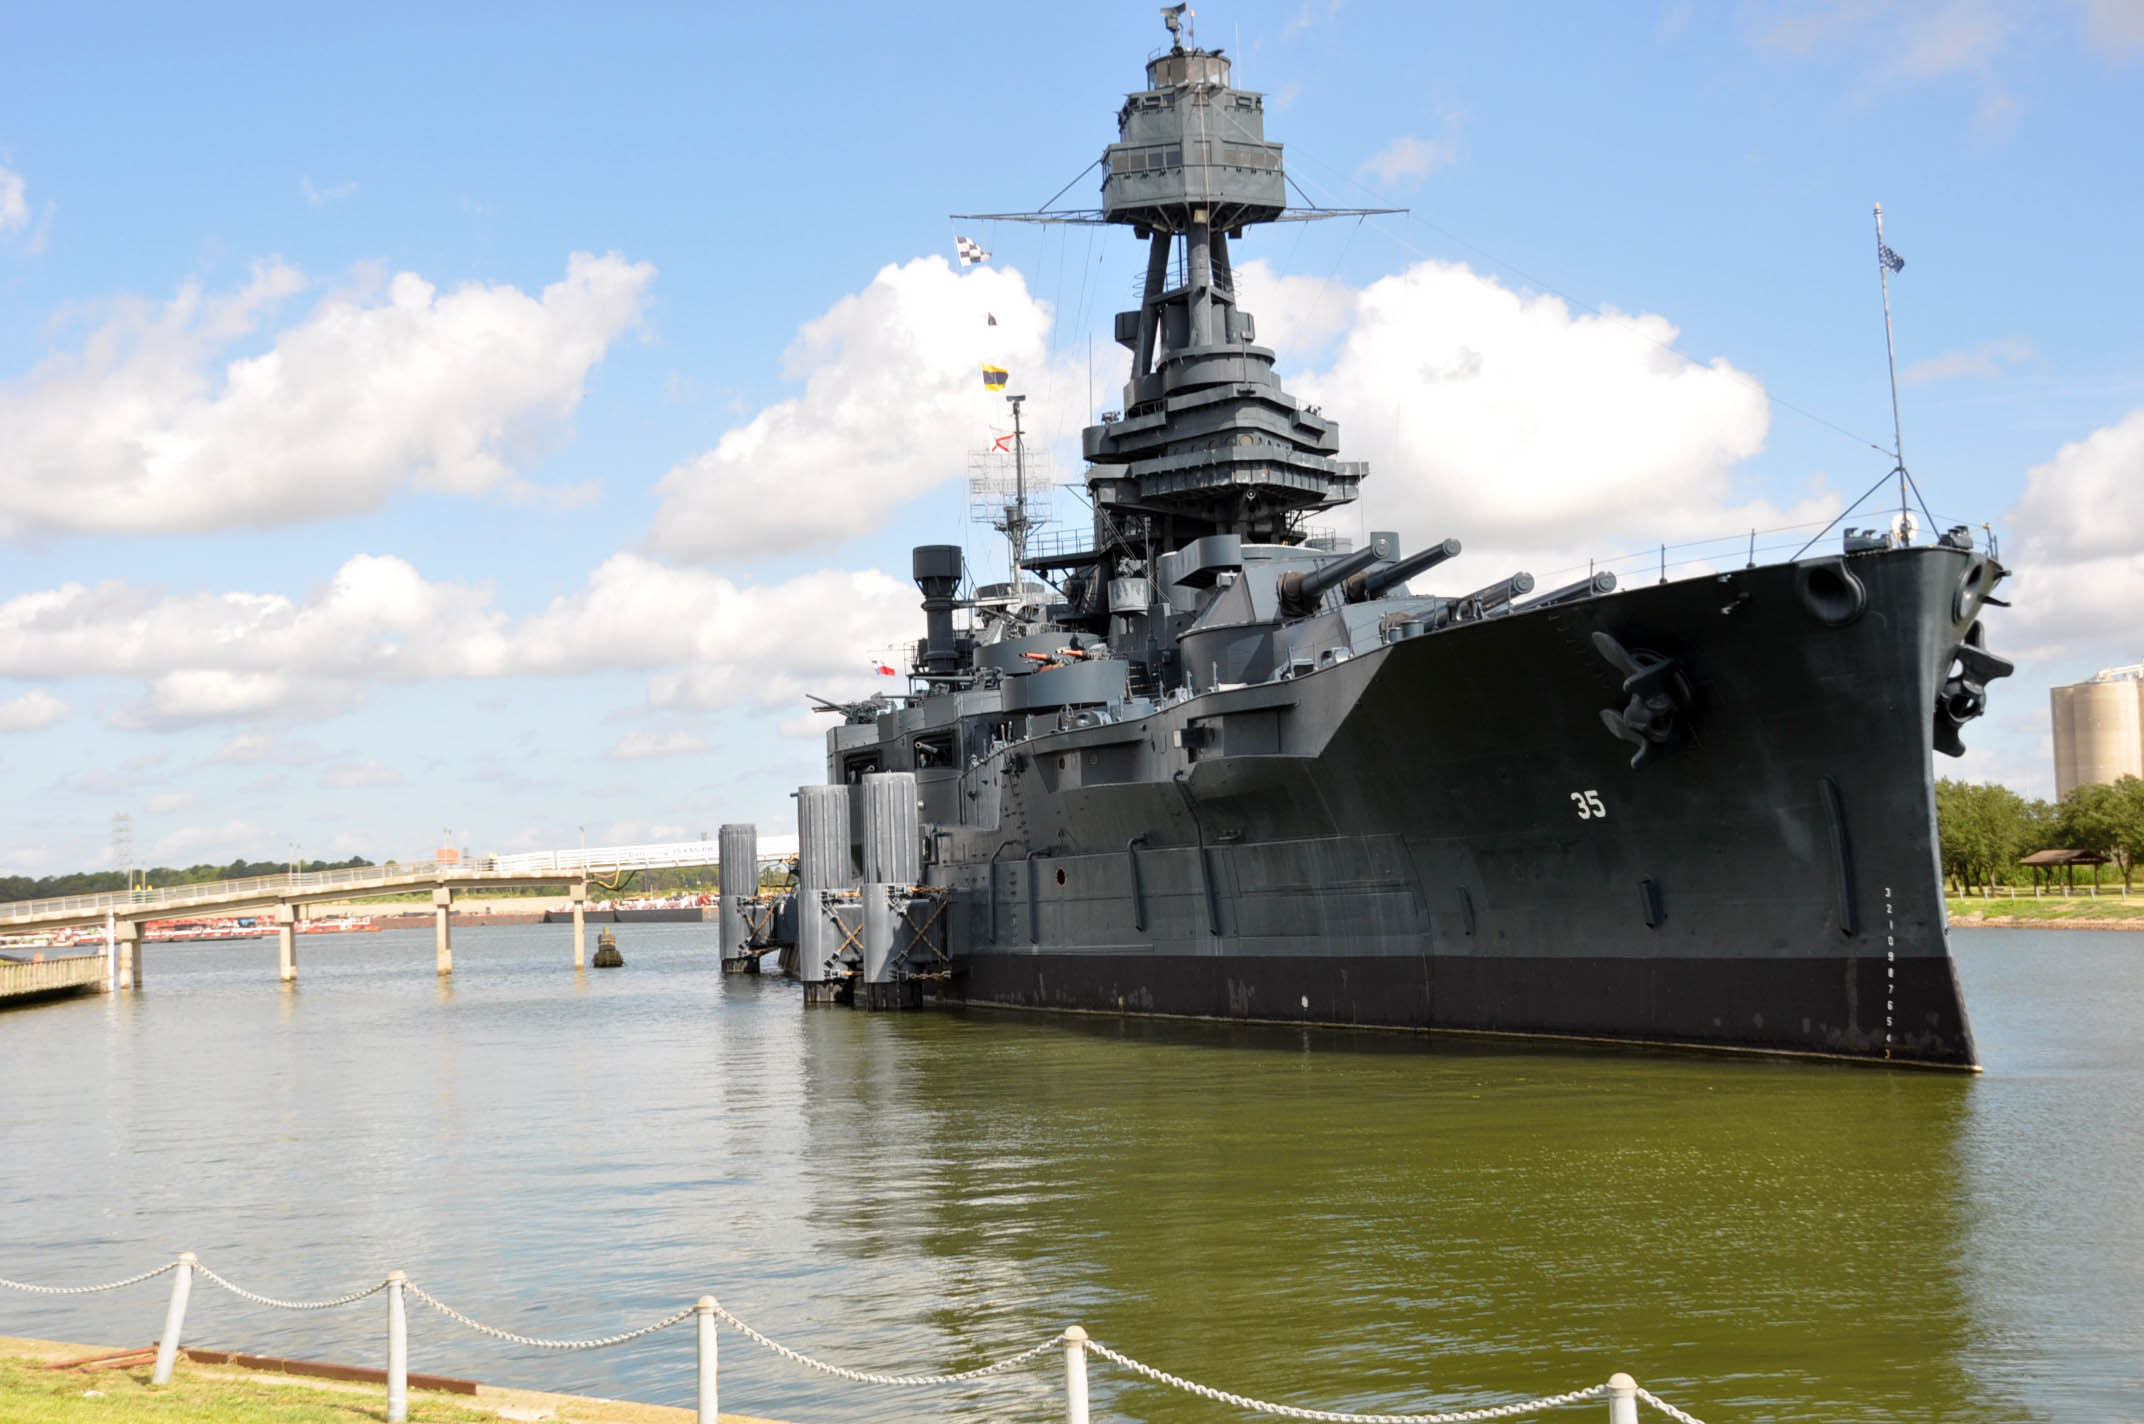 FileUS Navy NS The Museum Battleship USS Texas Is - Ship museums in us